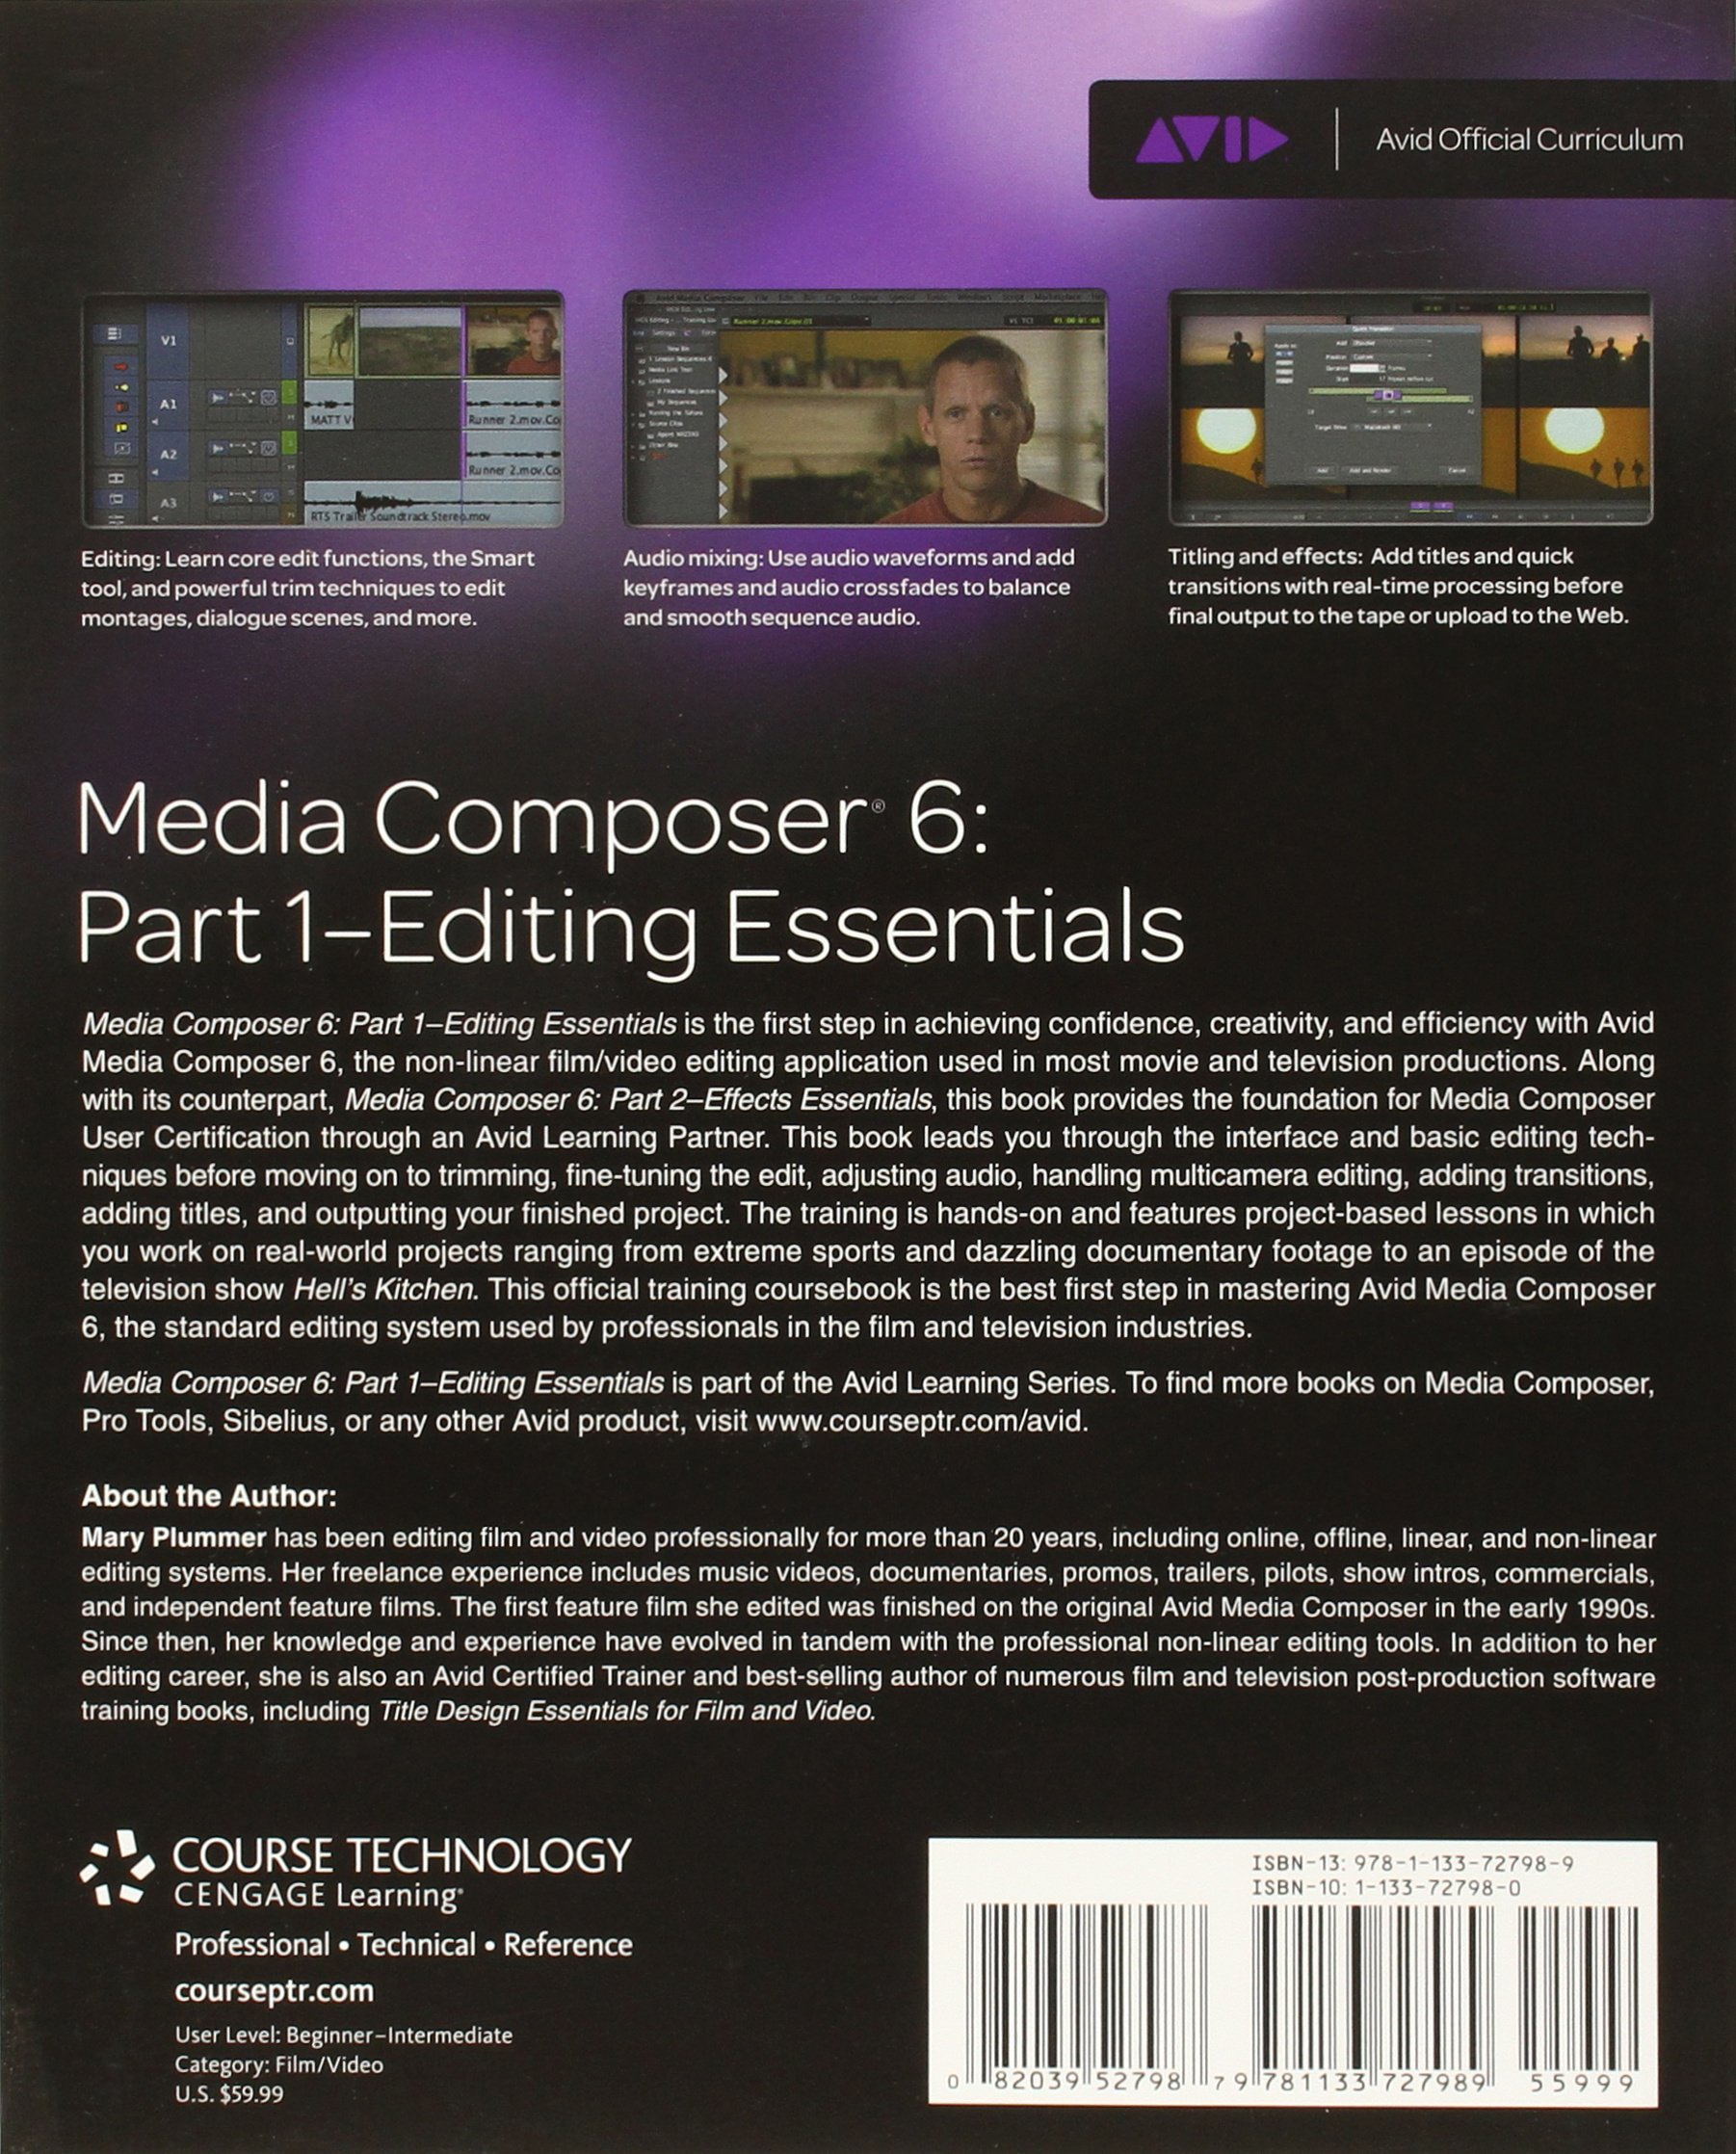 Media Composer 6: Part 1 - Editing Essentials (Avid Learning) by Brand: Course Technology PTR